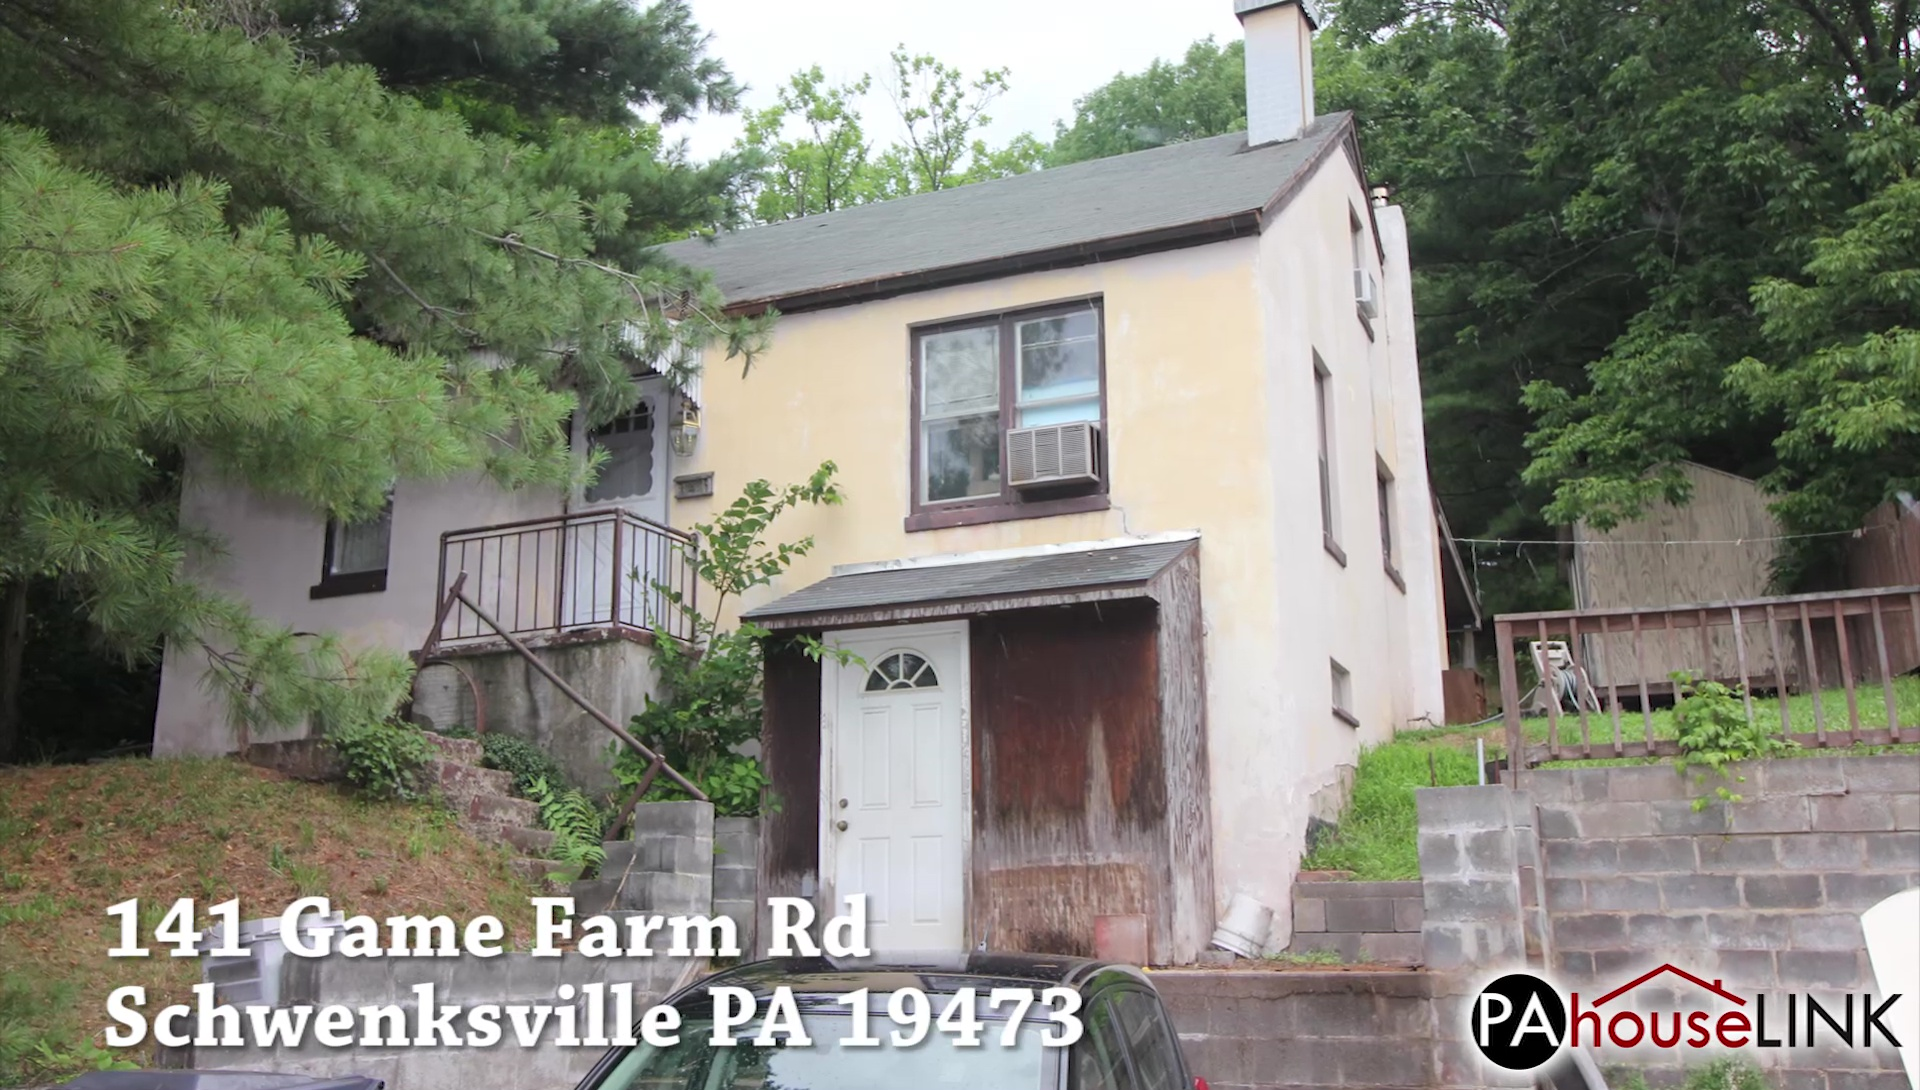 141 Game Farm Rd Schwenksville PA 19473 | Coming Soon Foreclosure Properties Schwenksville PA 19473